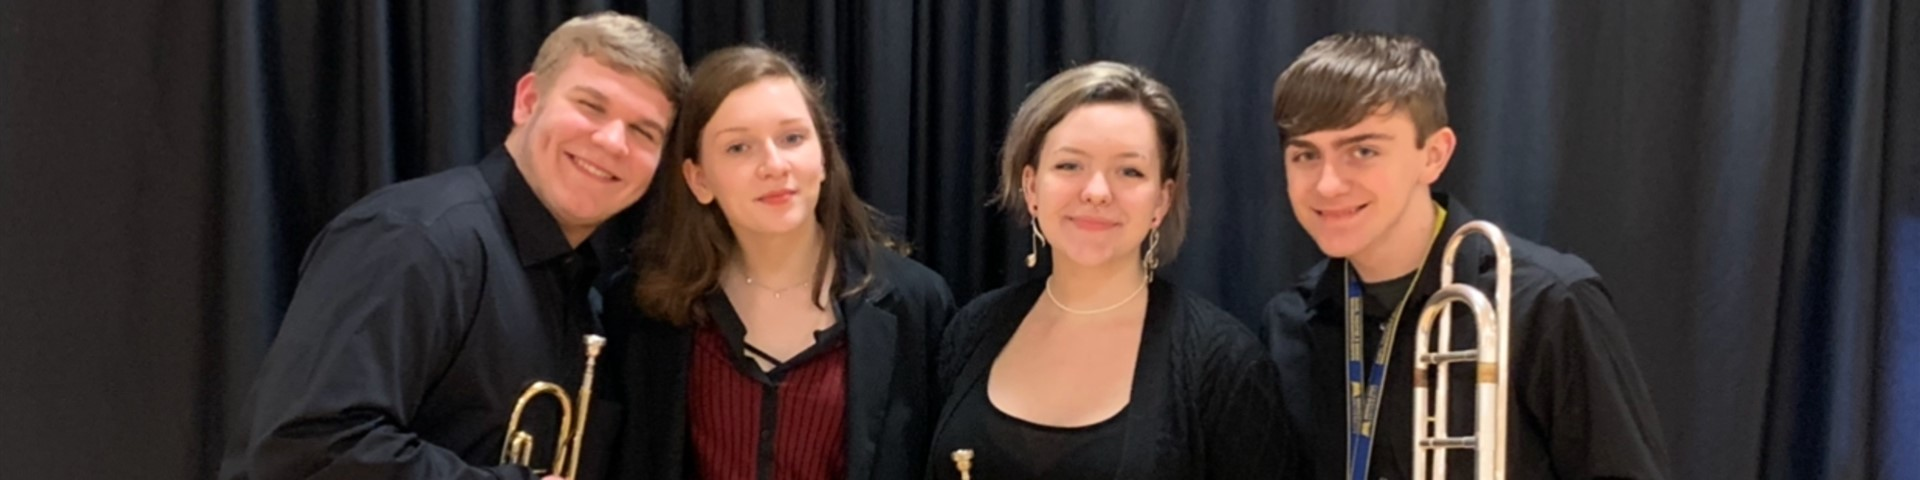 Fairview Students participated in 2020 Morehead State University High School Honor Band Festival